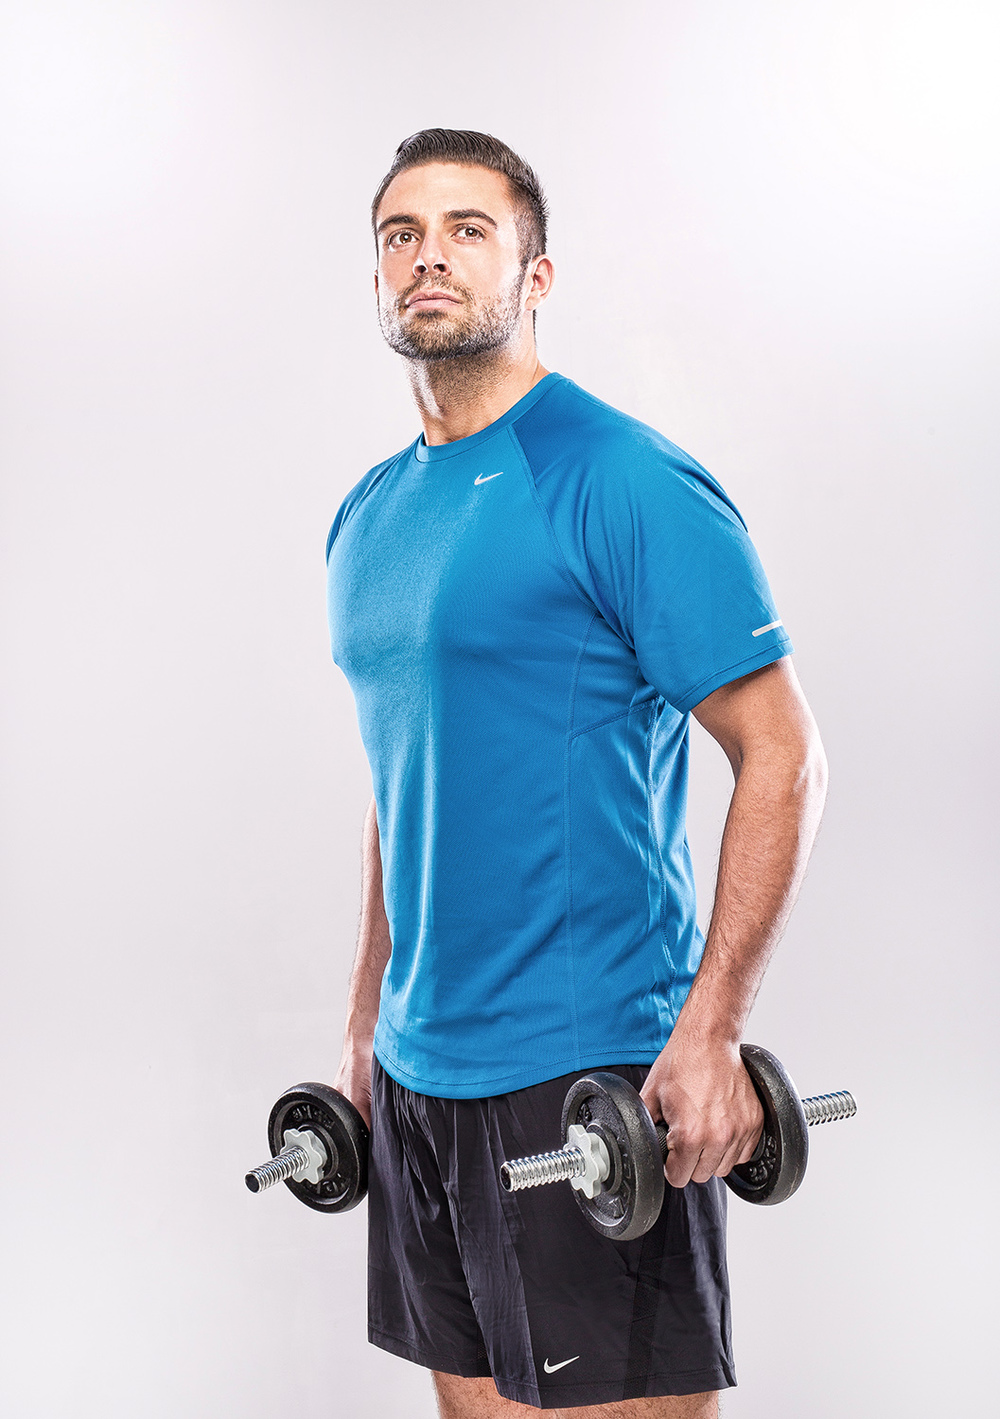 Karl Bowe sport shoot for BMA models